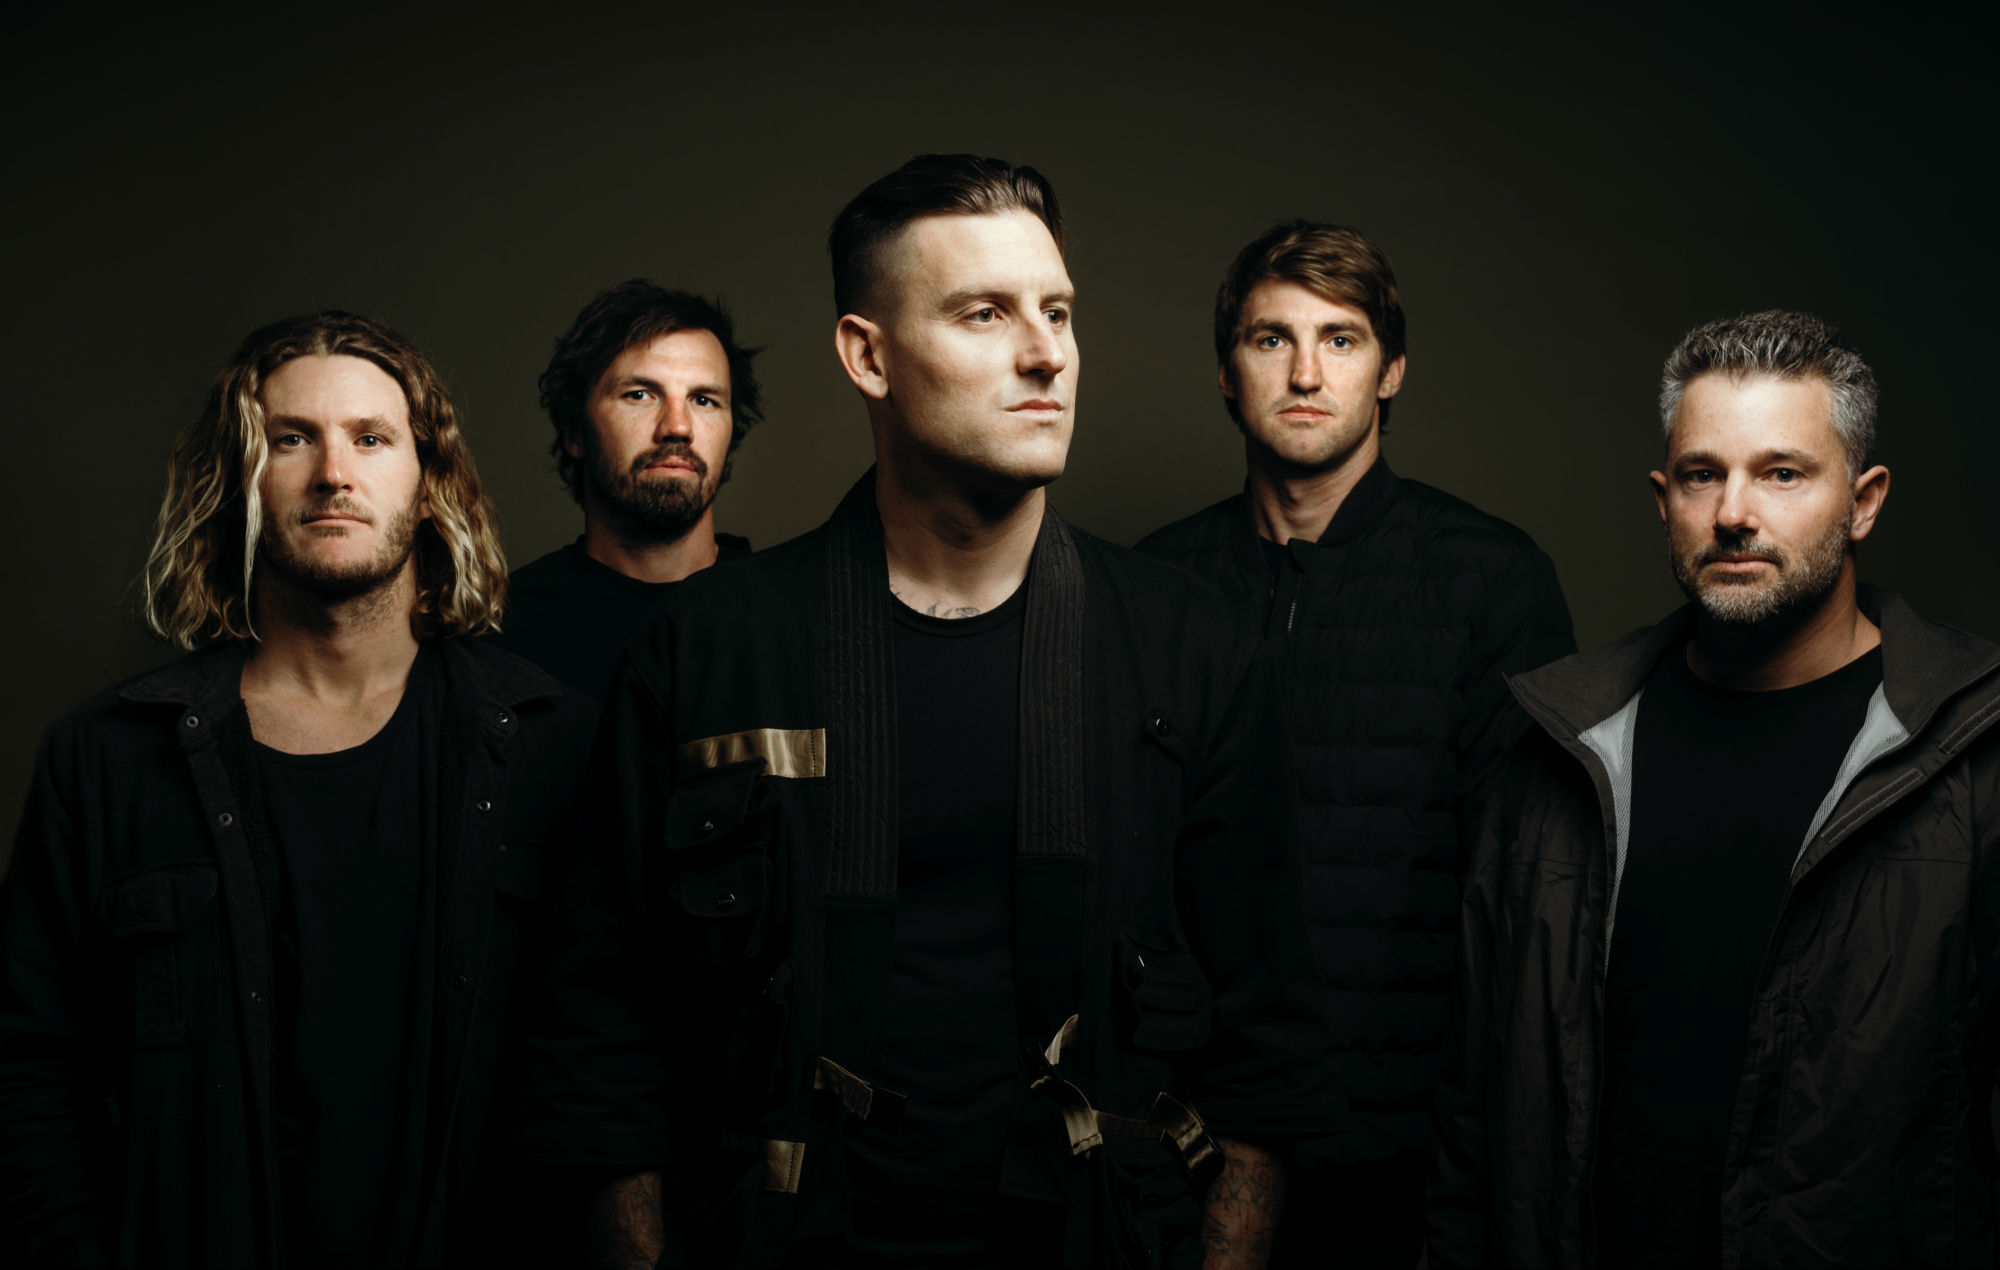 Parkway Drive on their new tour doc and live album 'Viva The Underdog's